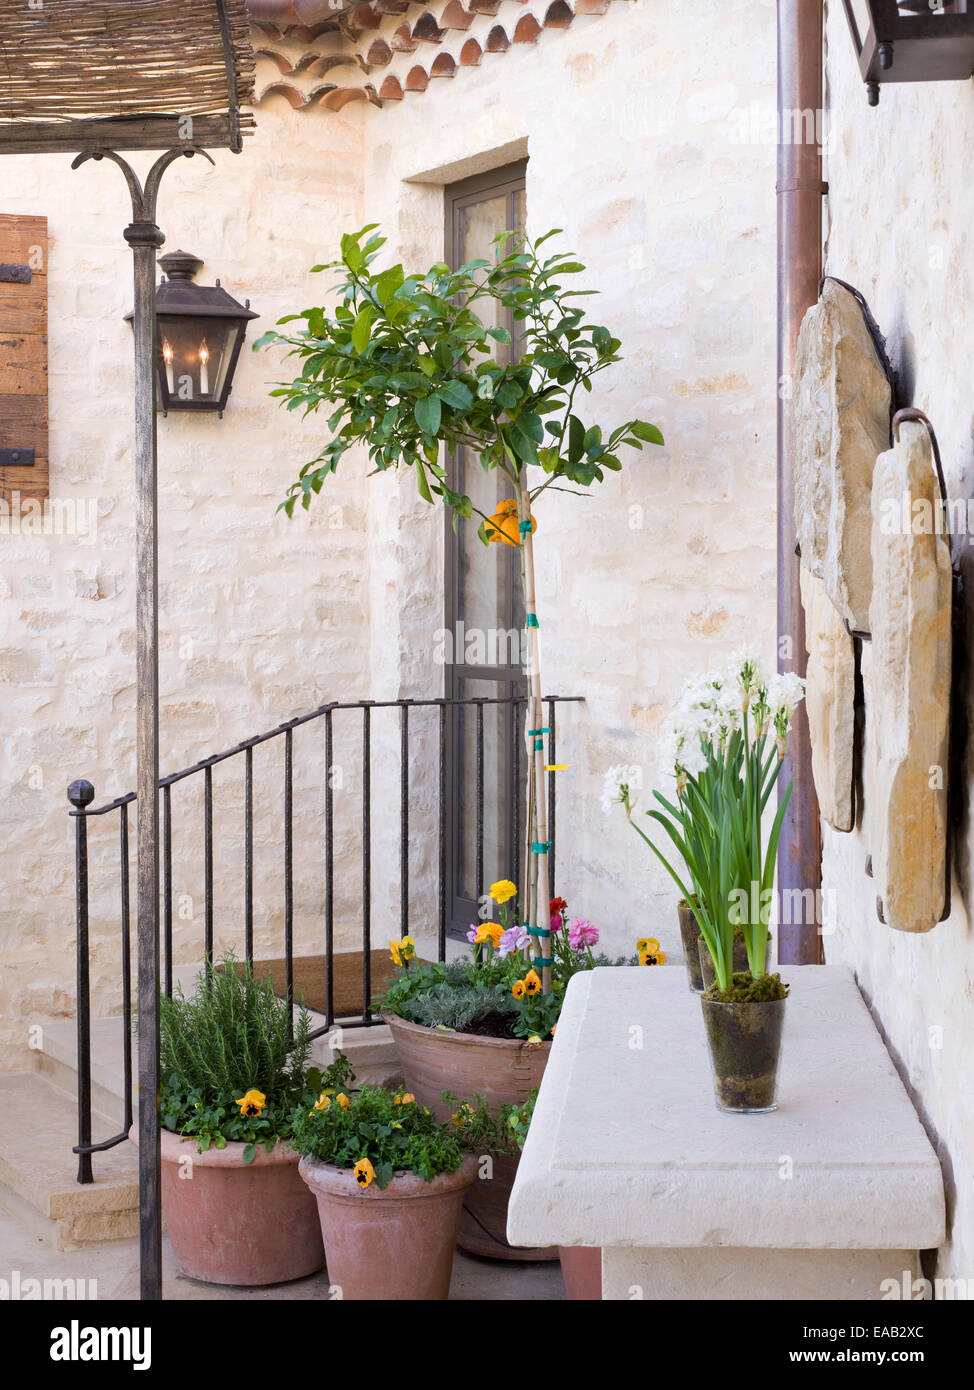 stone patio with garden elements - Stock Image